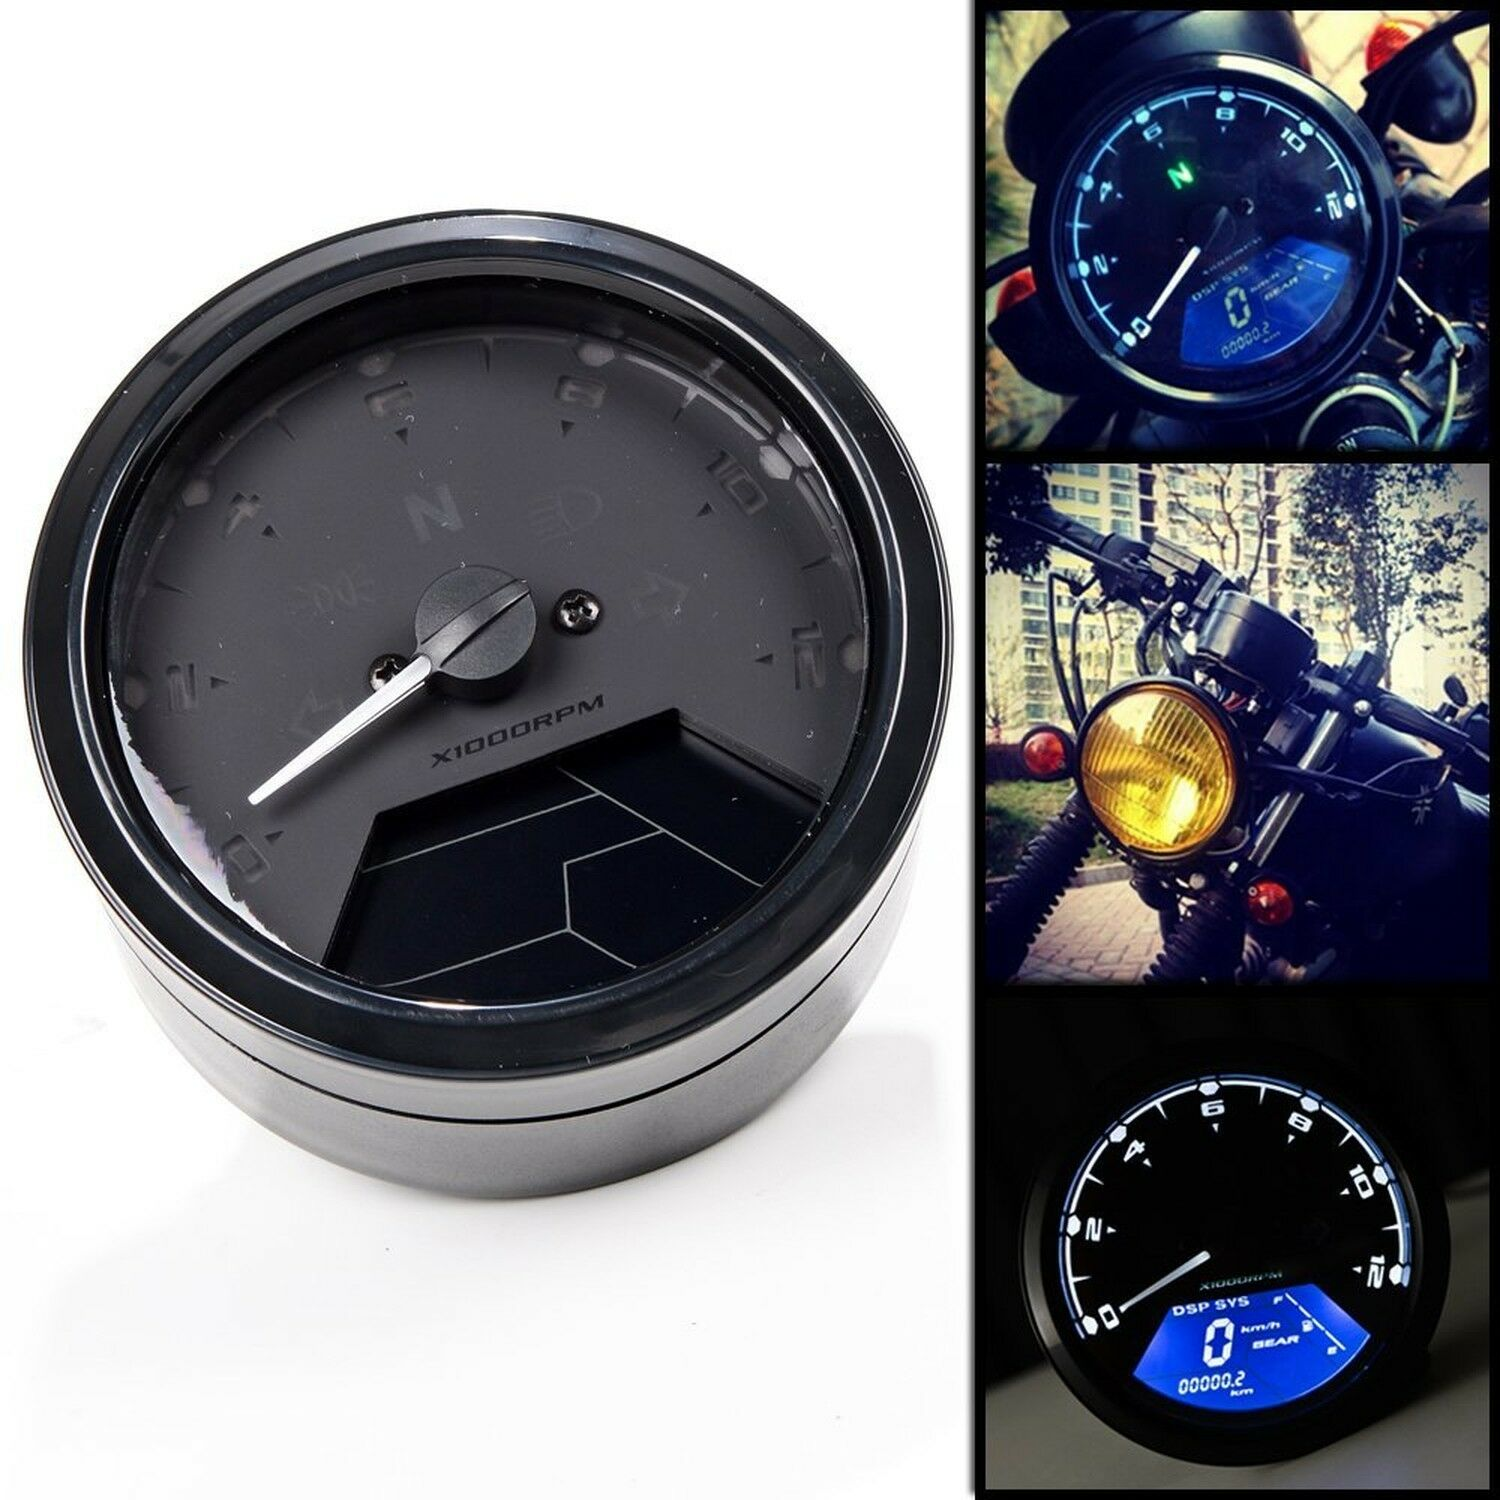 12000rpm kmh mph lcd digital odometer motorcycle speedometer tachometer ebay. Black Bedroom Furniture Sets. Home Design Ideas